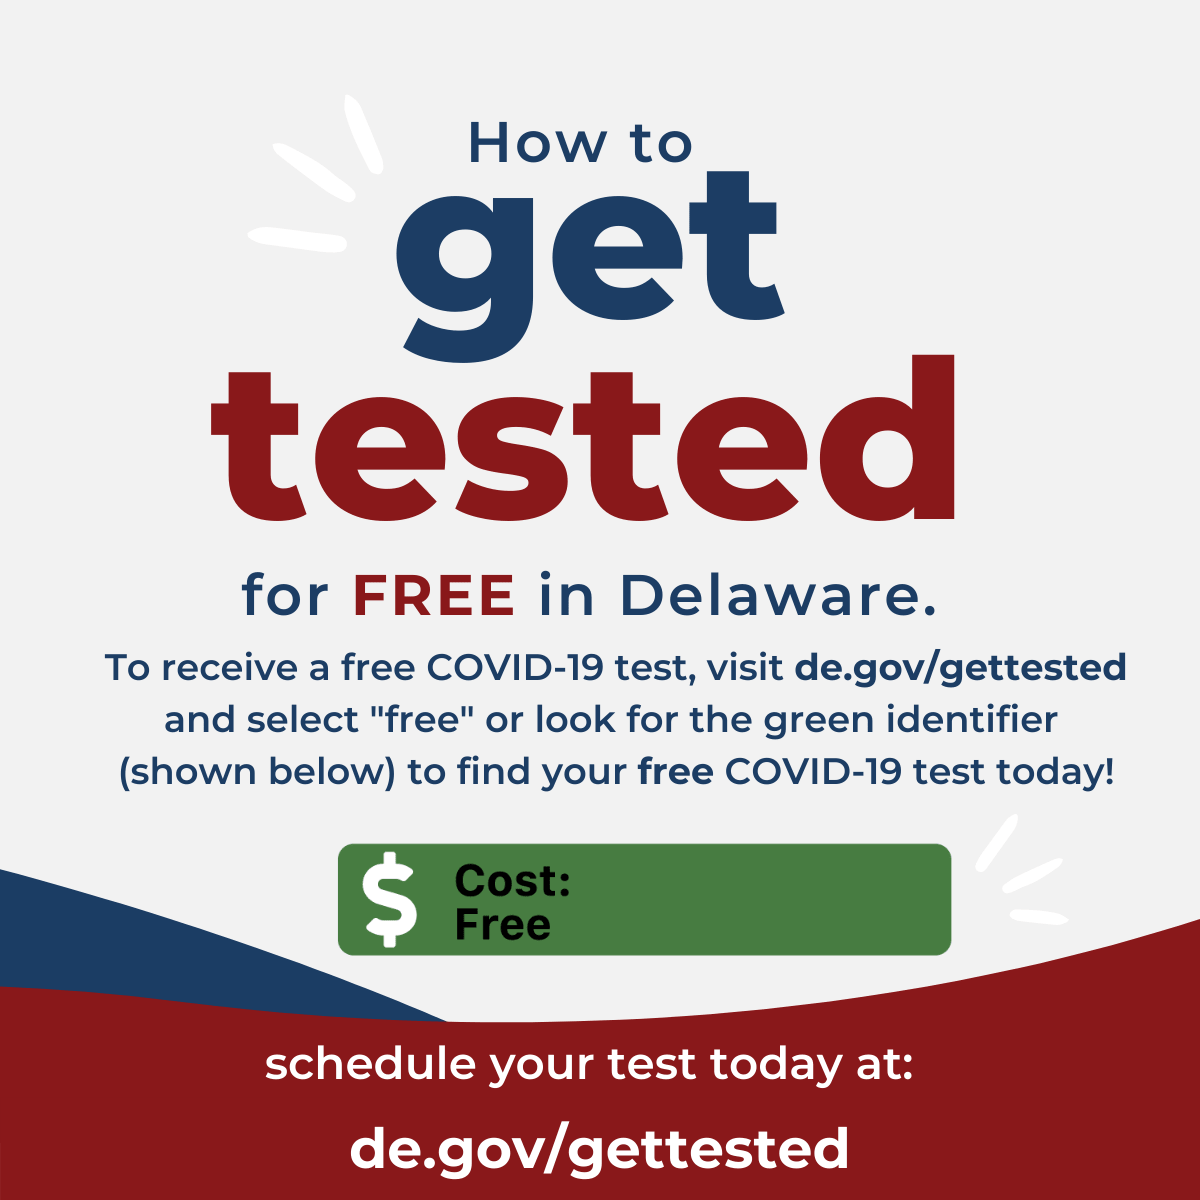 """How to get tested for free in Delaware. To receive a free COVID-19 test, visit de.gov/gettested and select """"free"""" or look for the green identifier to find your free COVID-19 test today!"""